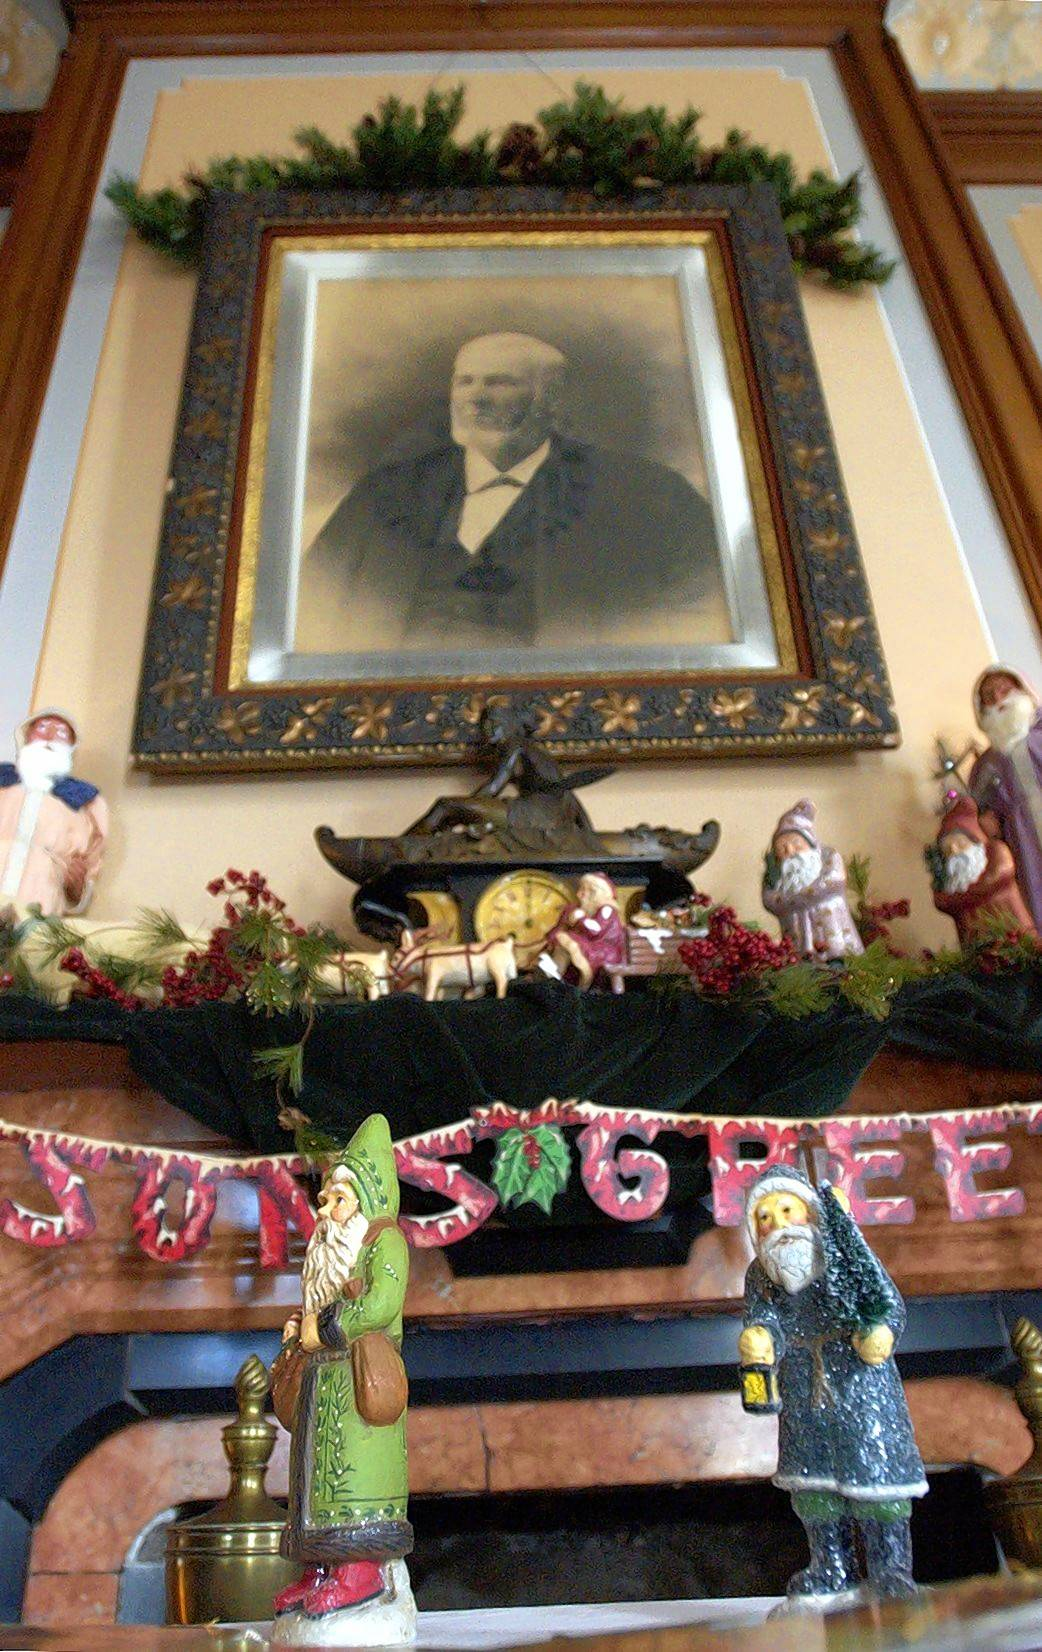 A photograph of Judge David Davis hangs above the fireplace decorated for the holidays at his former home in Bloomington.